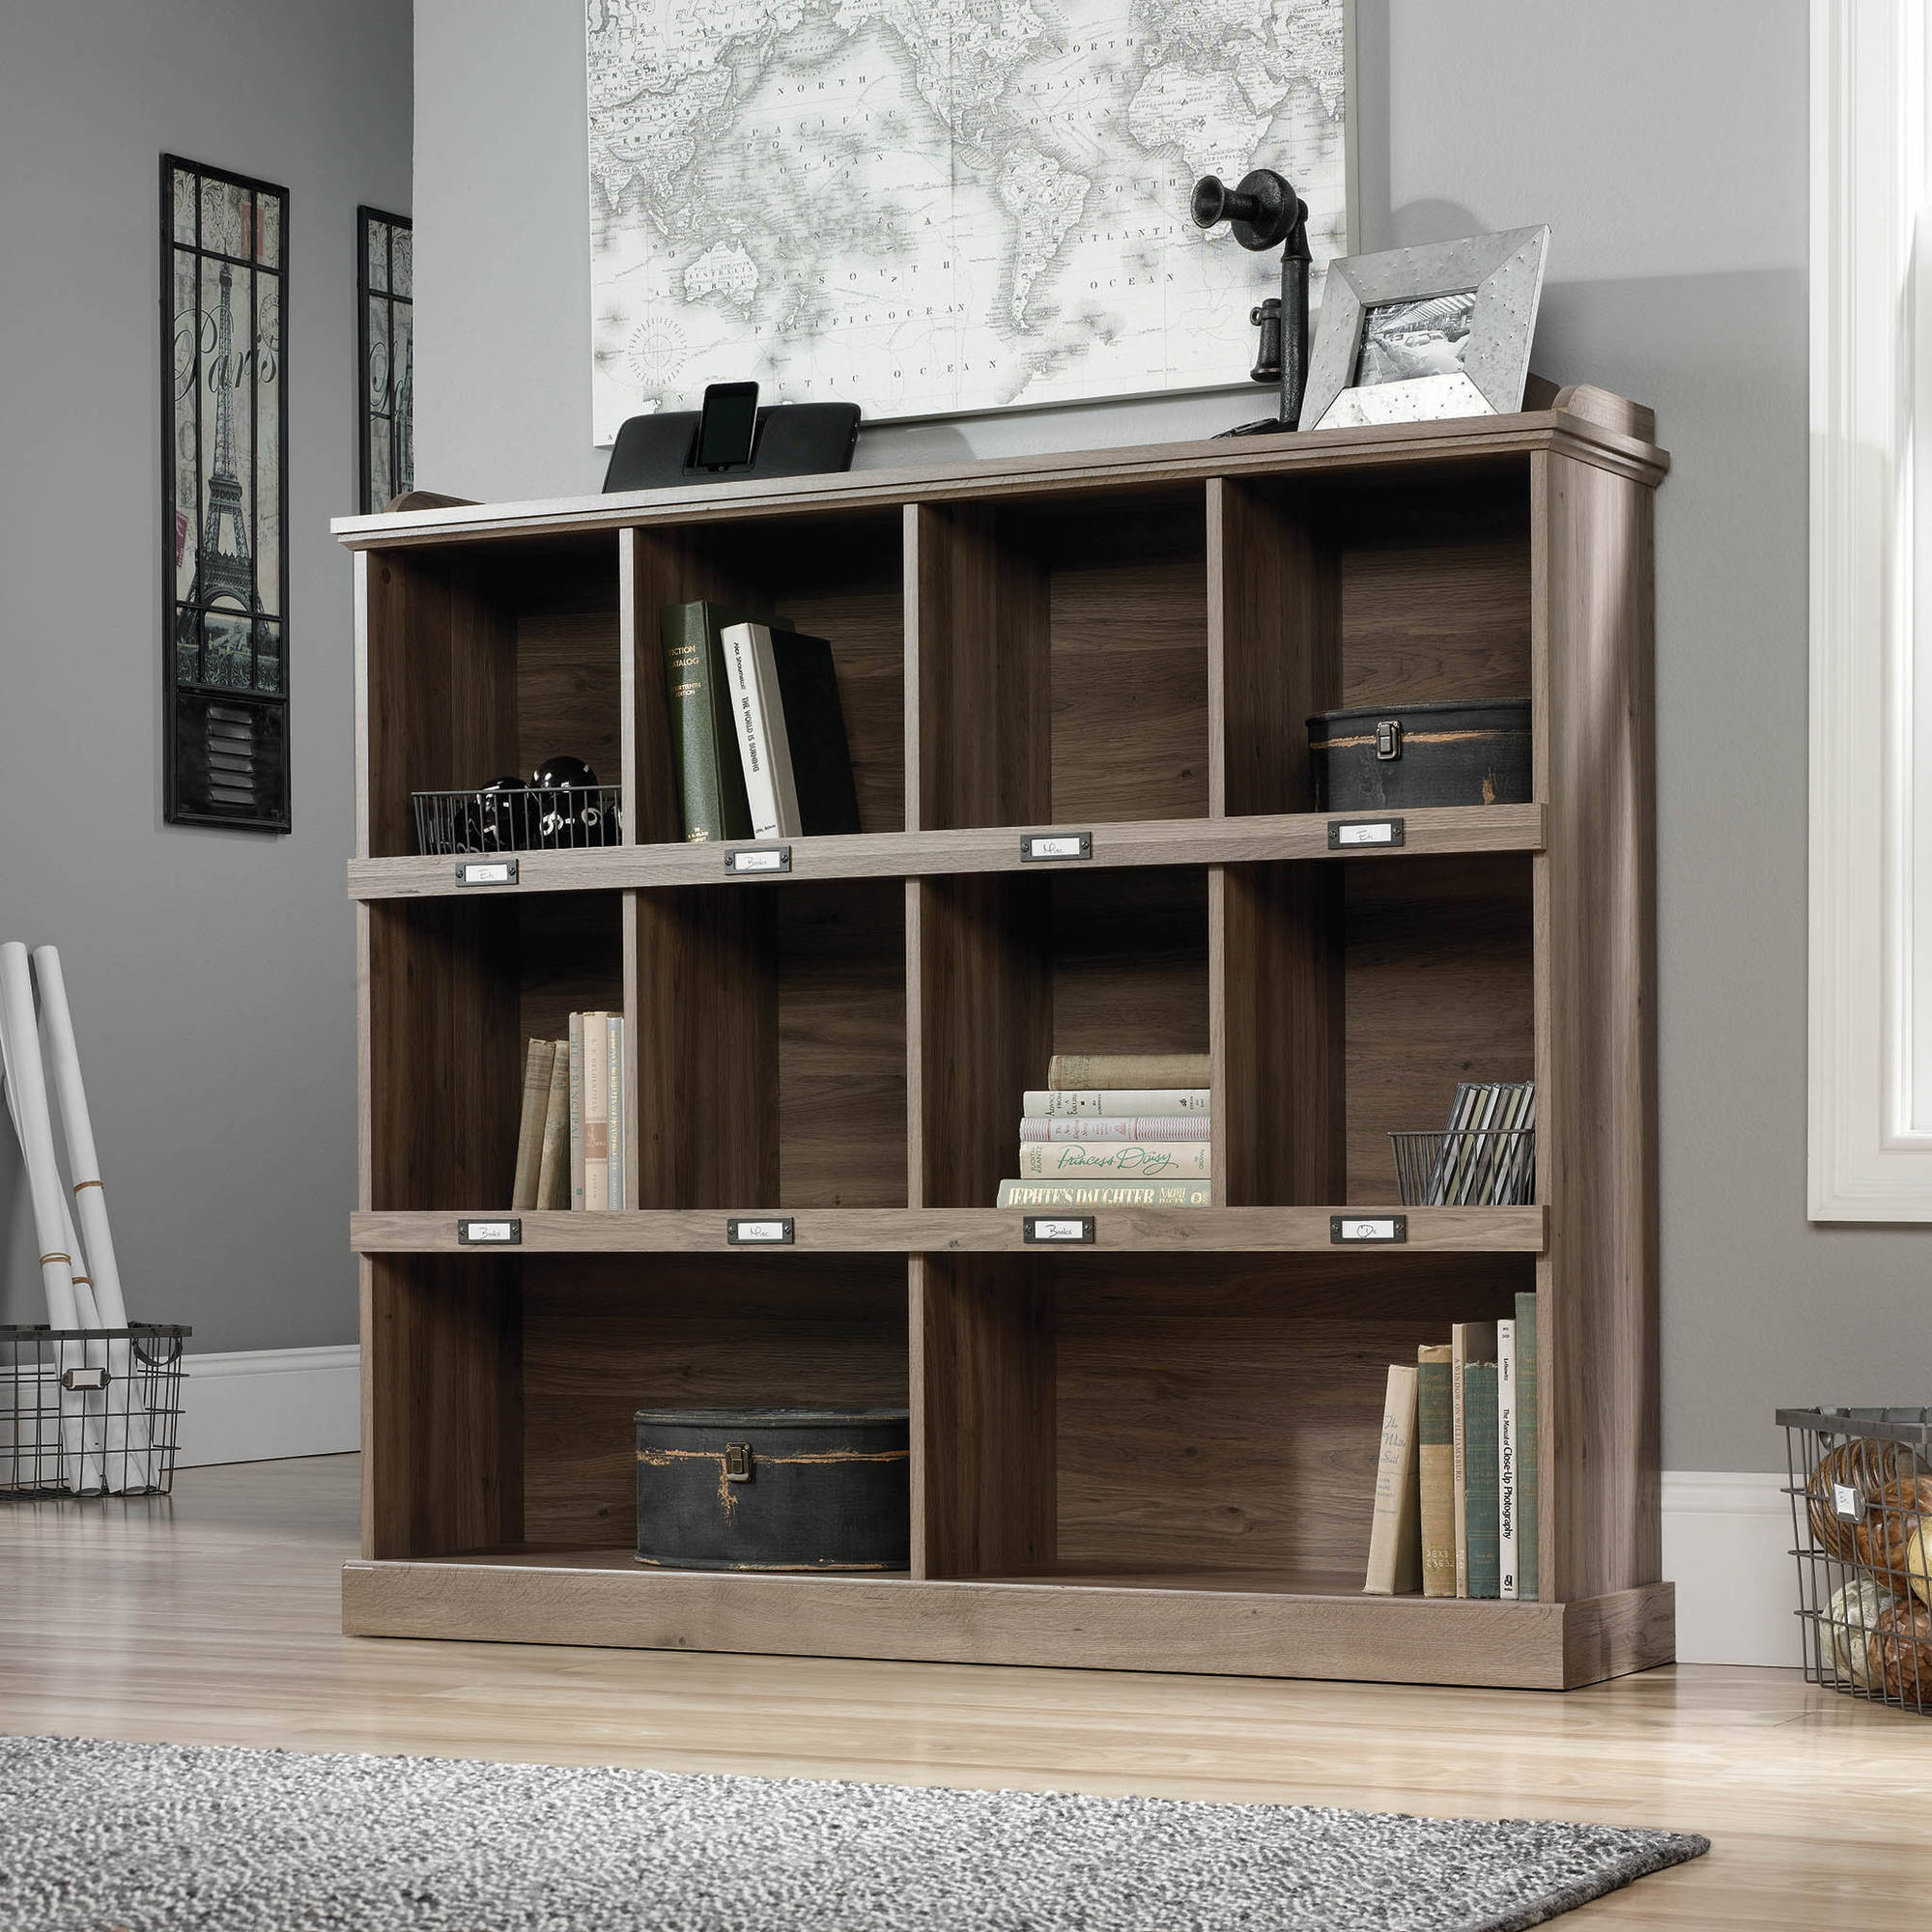 . Sauder Barrister Lane Bookcase  Multiple Colors   Walmart com